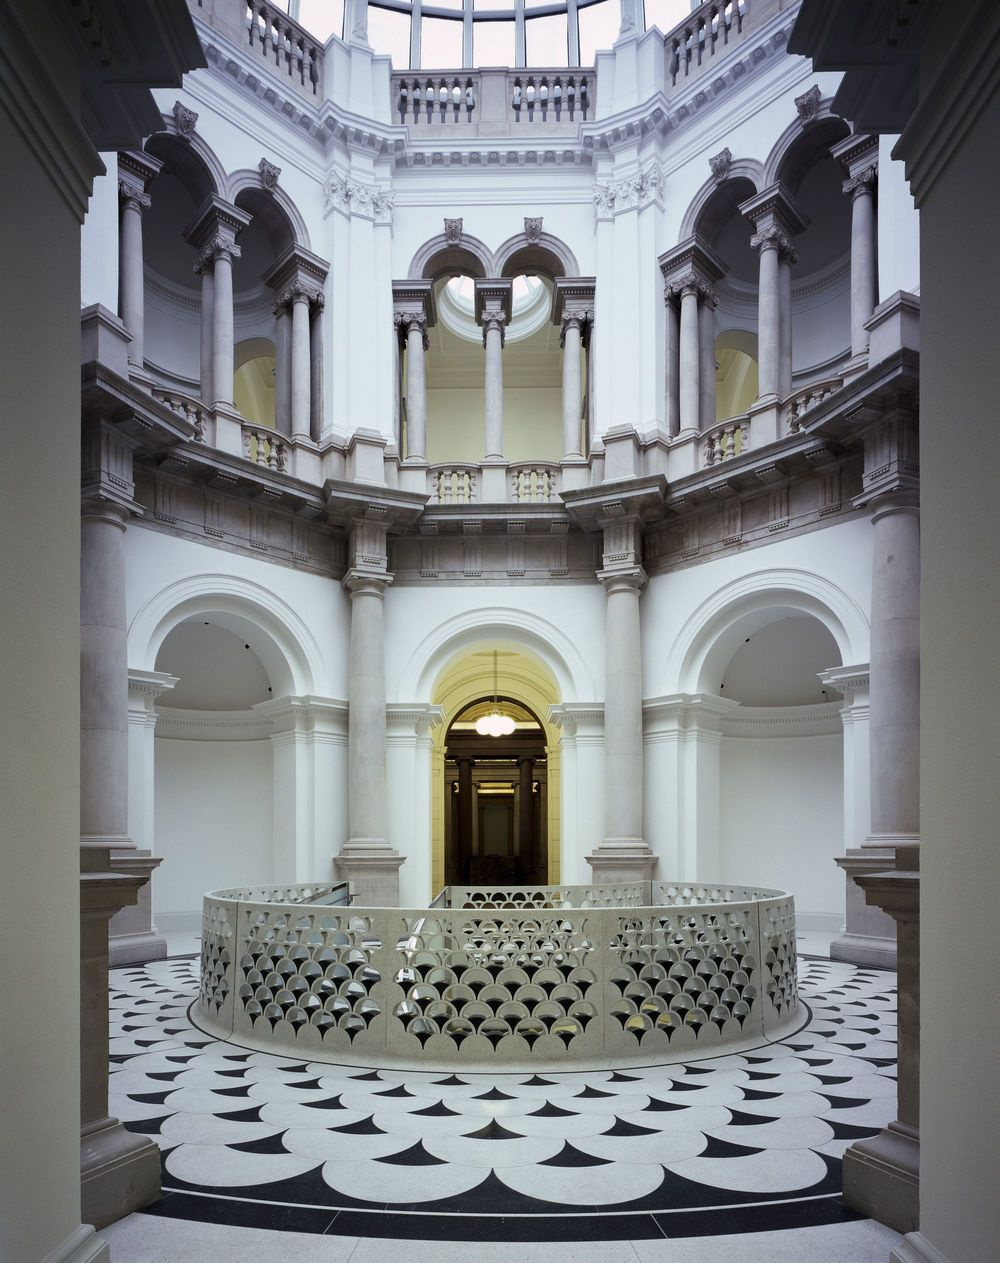 The Architects Choice_critical-round-up-tate-britain-renovation-caruso-st-john_01_principal_level_rotunda_-c-_helene_binet.jpg